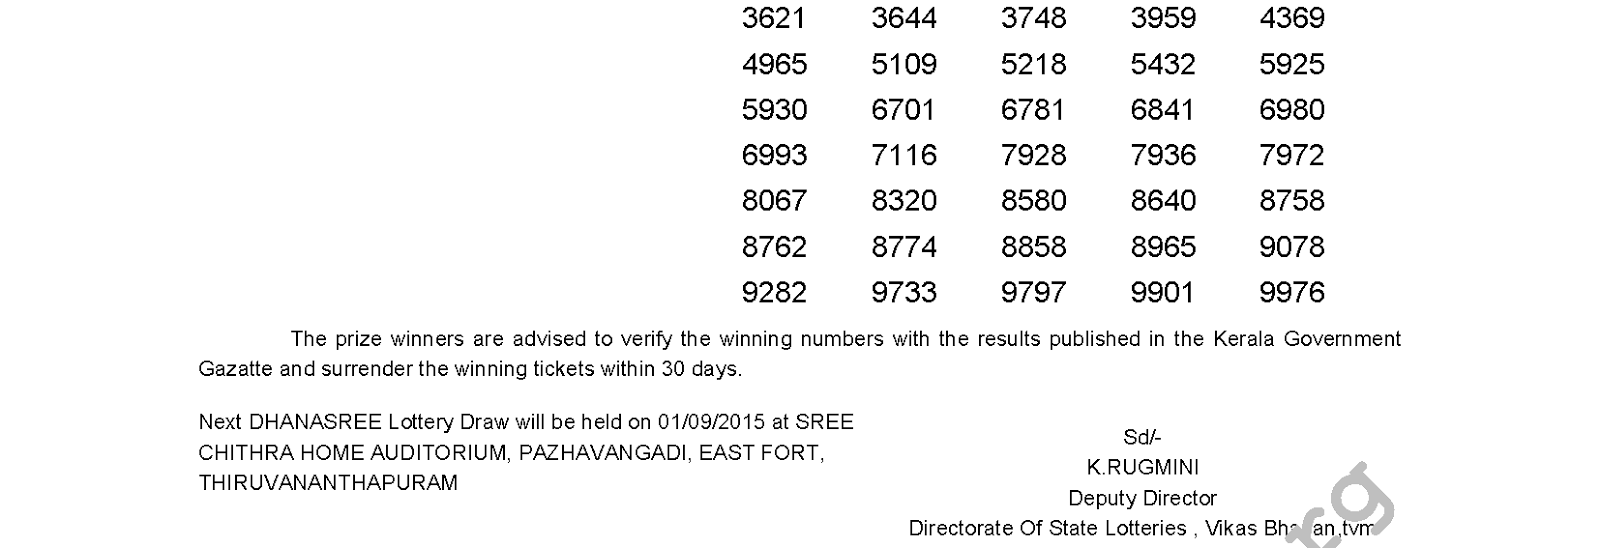 DHANASREE Lottery DS 200 Result 25-8-2015